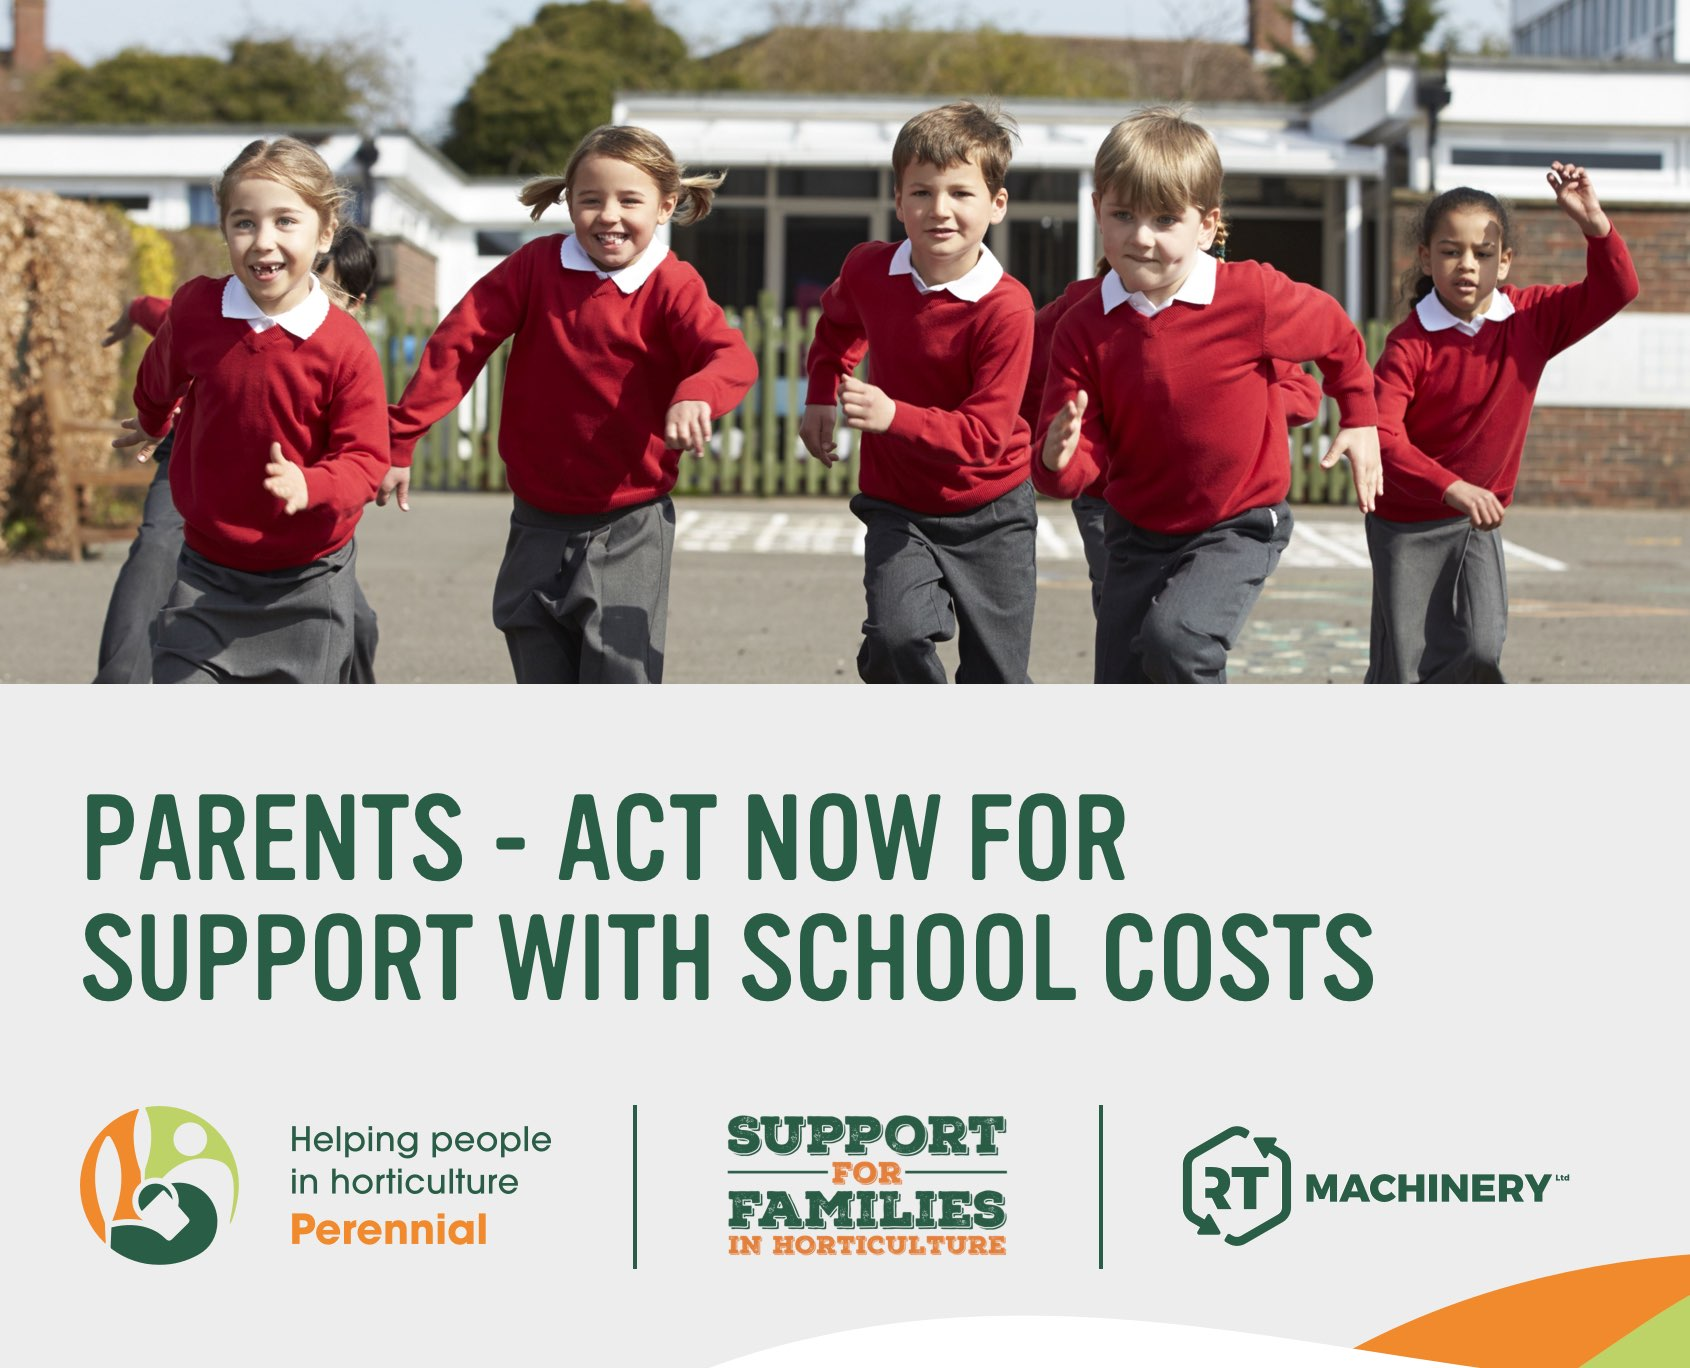 Support for Families in Horticulture